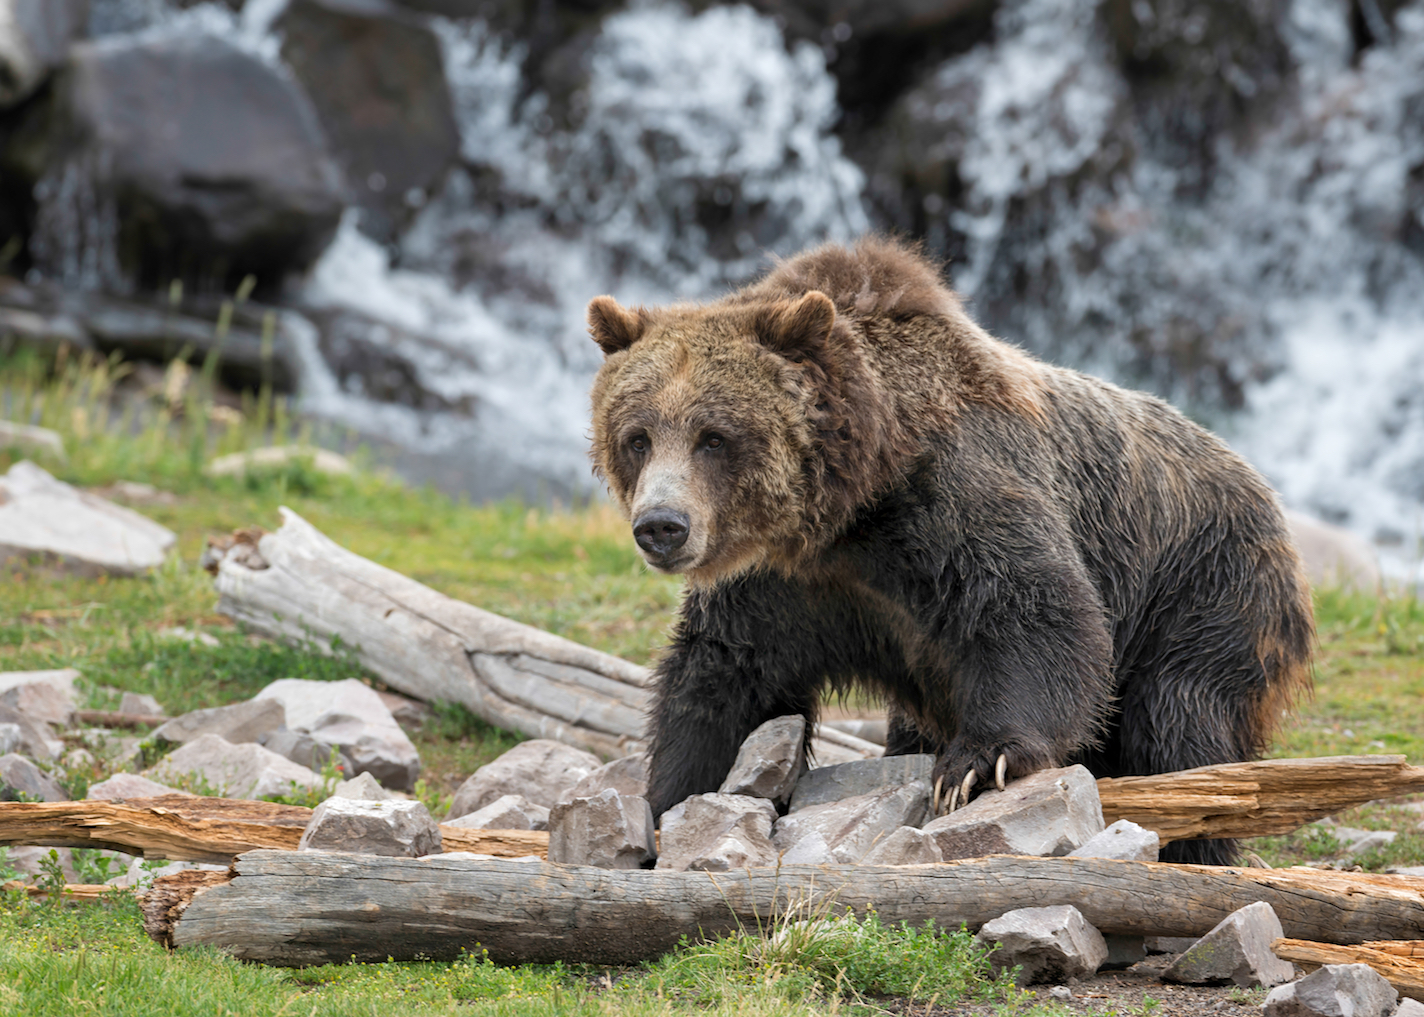 Some grizzly bears are eating more plants and berries after climate change has caused a decline of whitebark pine trees.